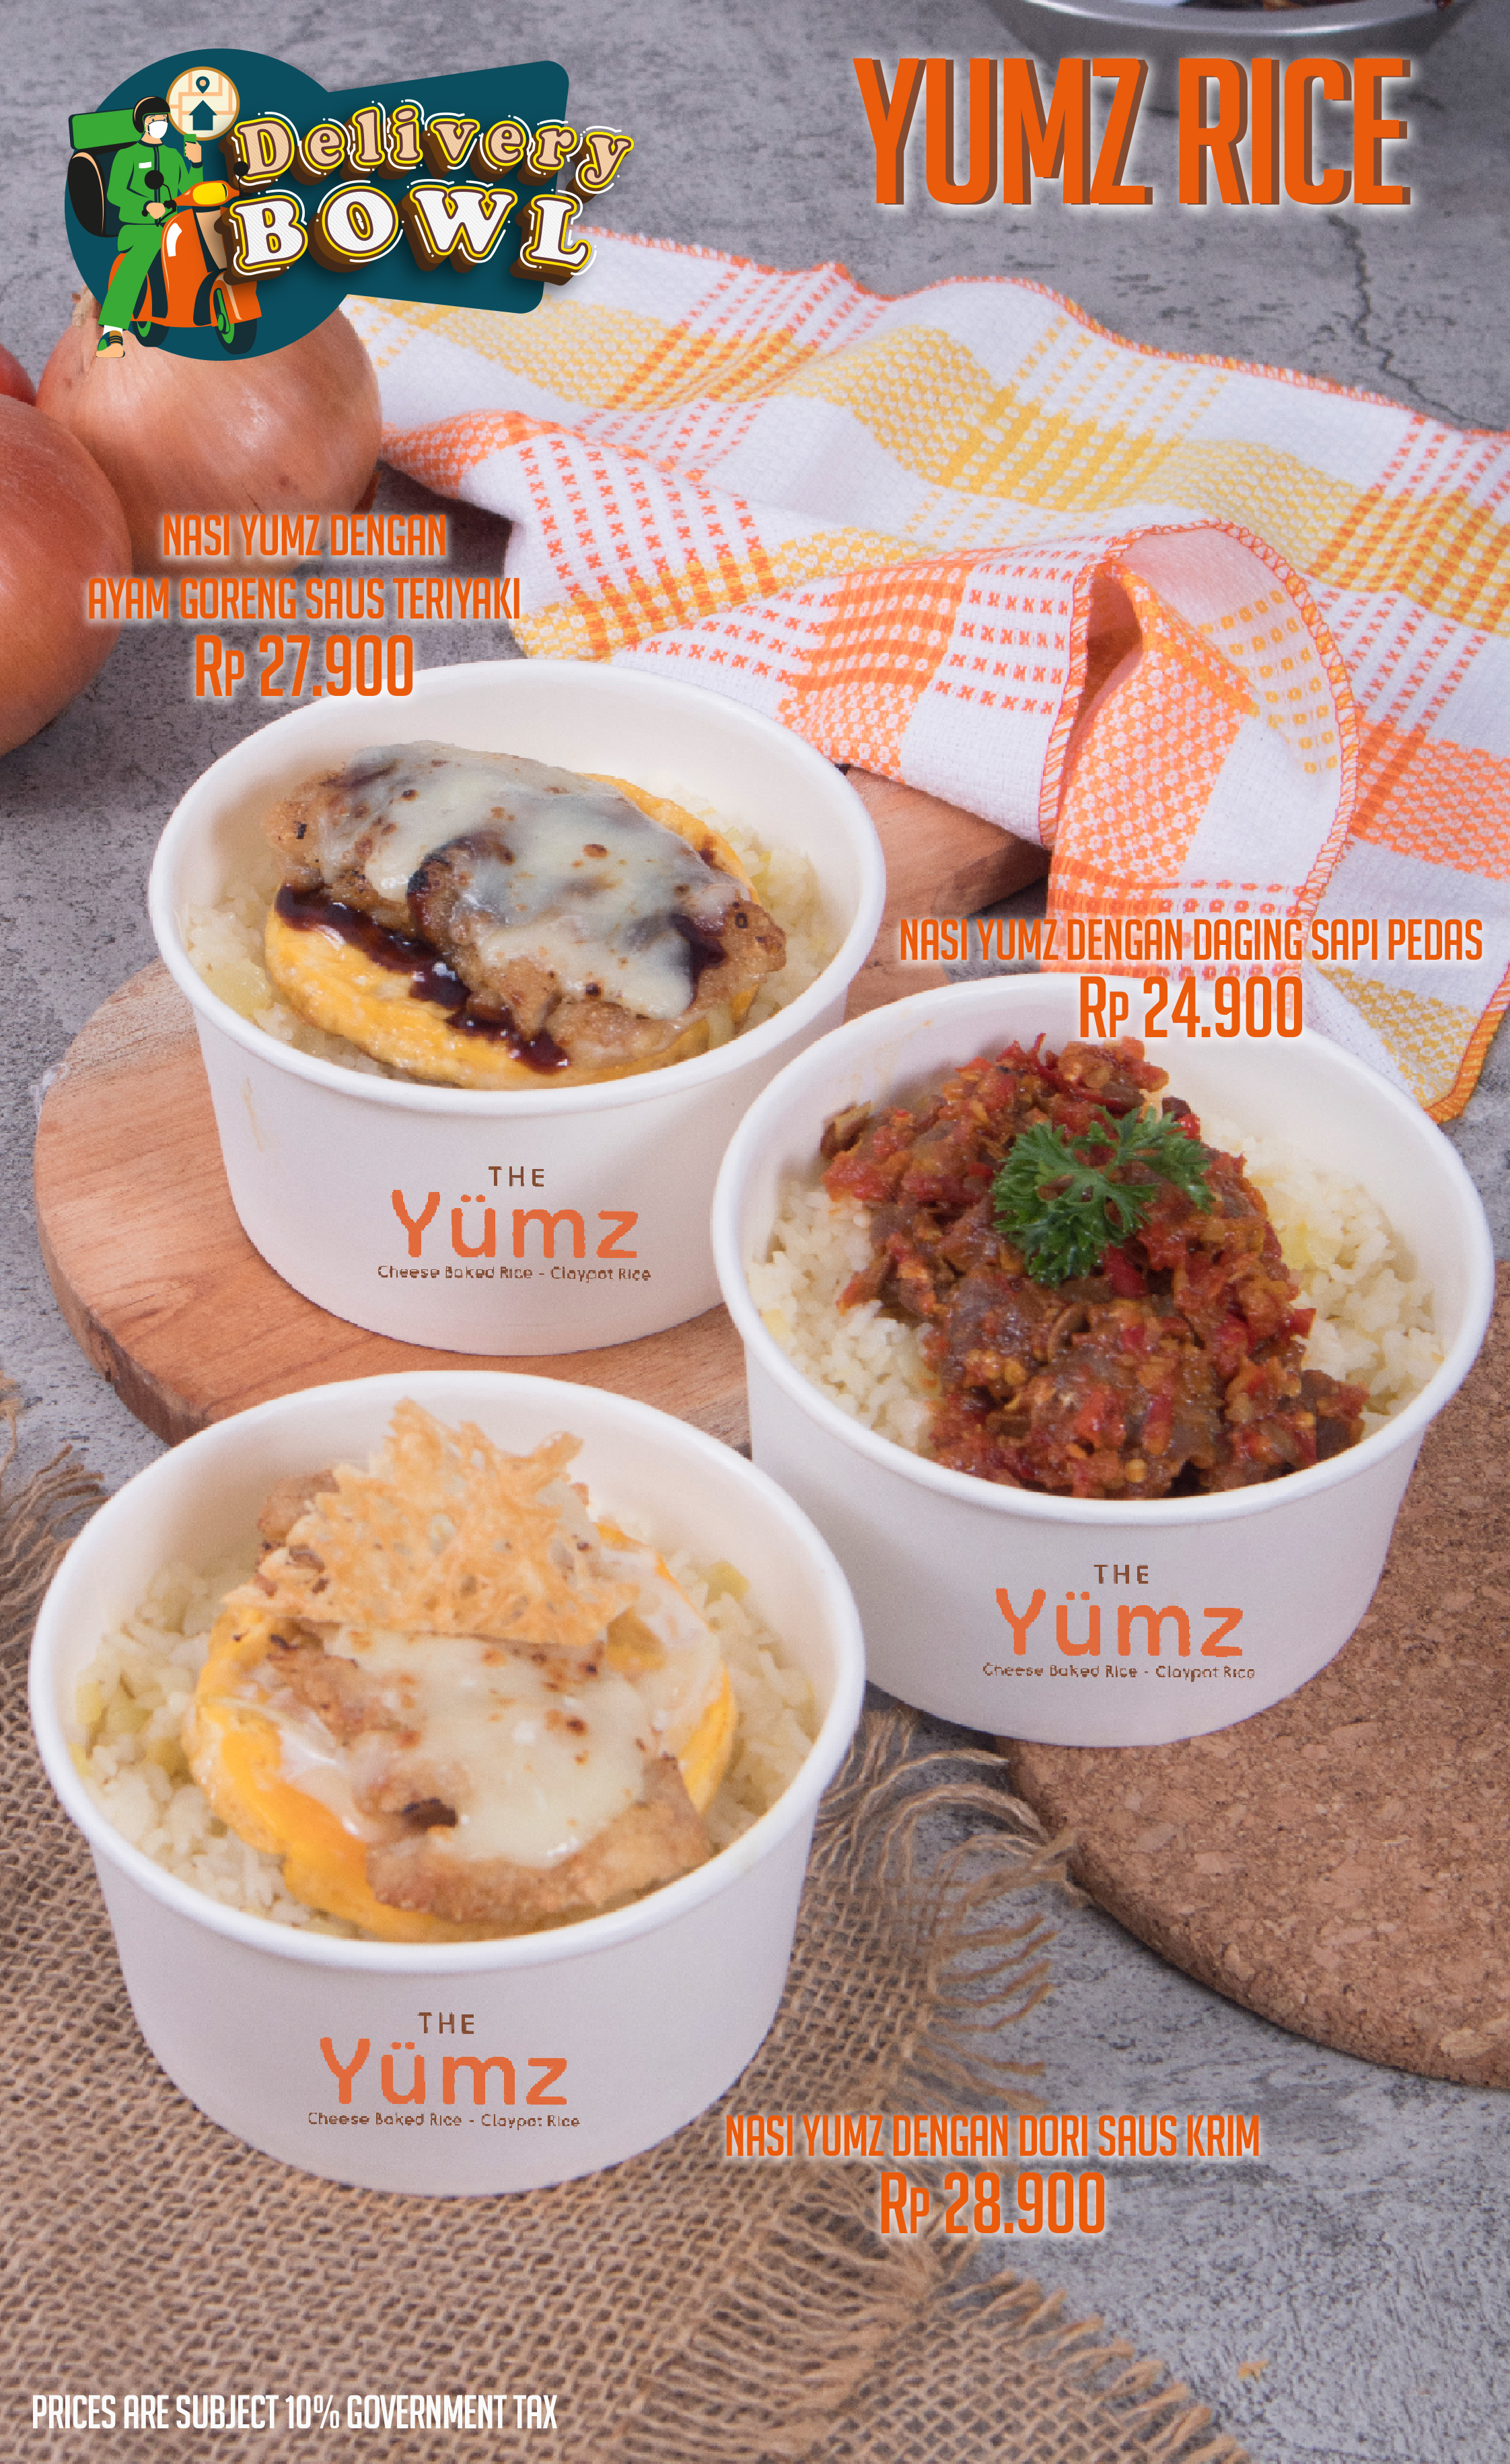 The Yumz - Delivery Bowl